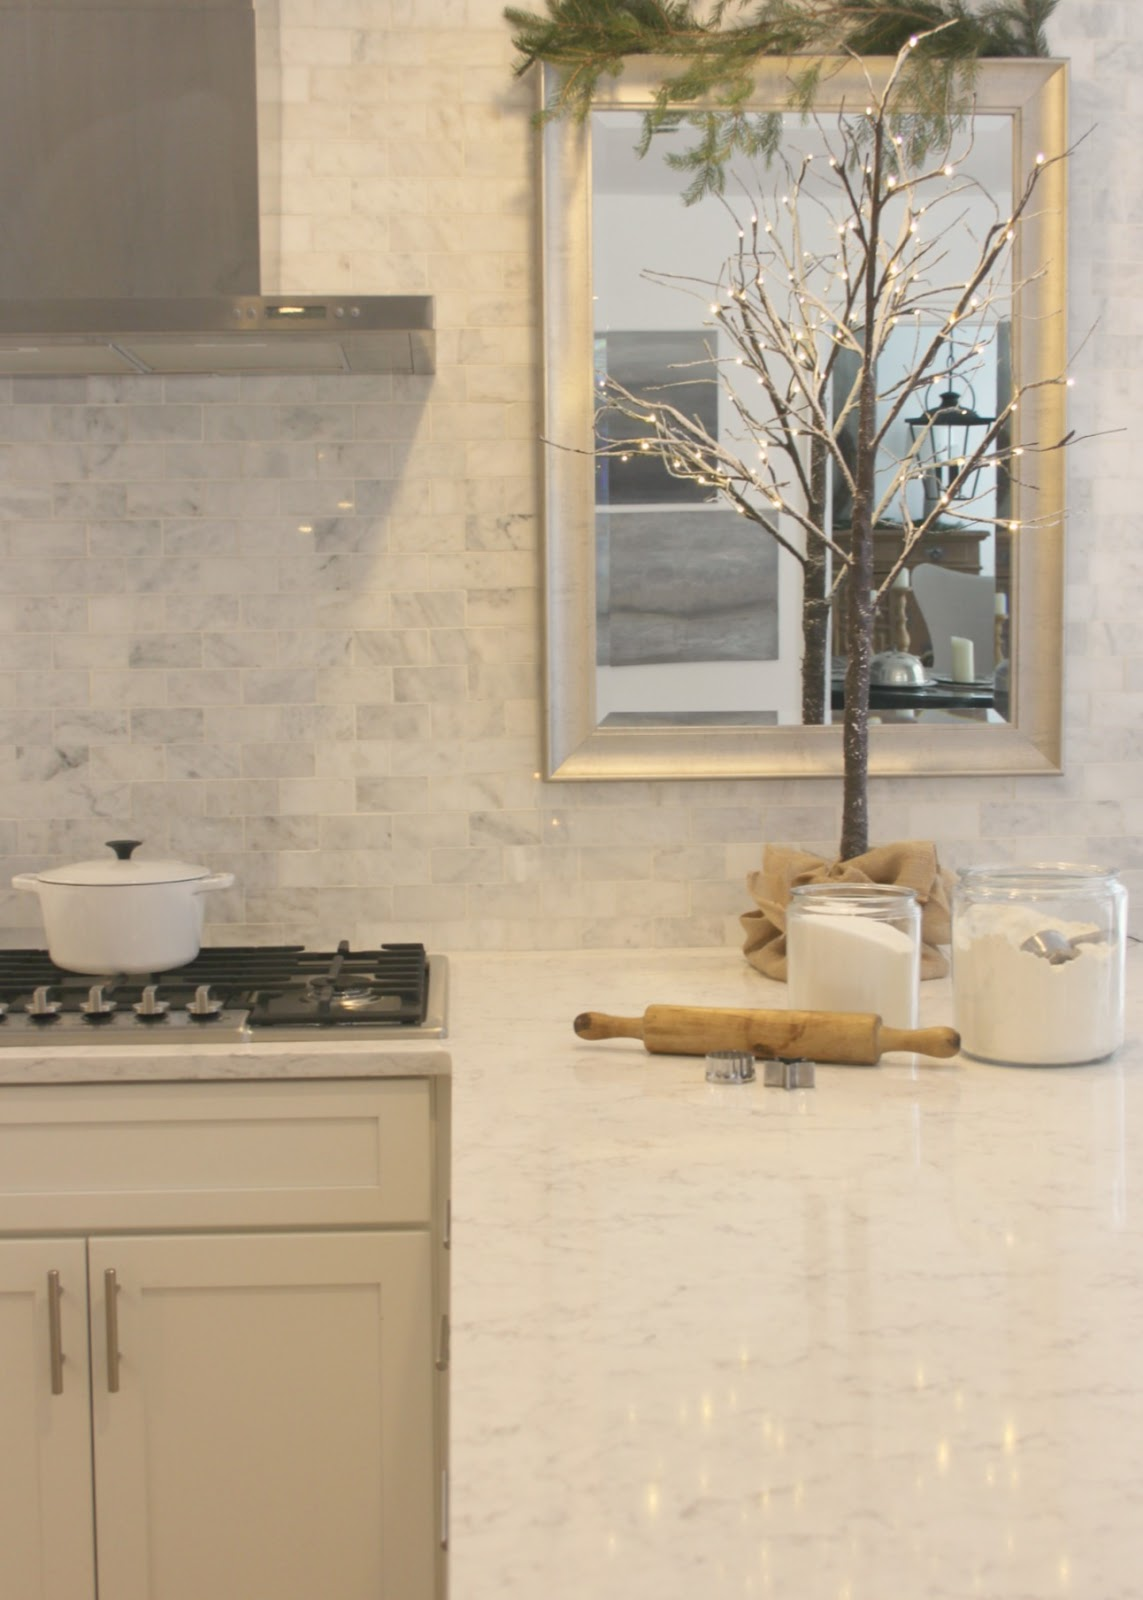 White kitchen by Hello Lovely Studio with Minuet Viatera quartz countertop, mirror, and Christmas decor